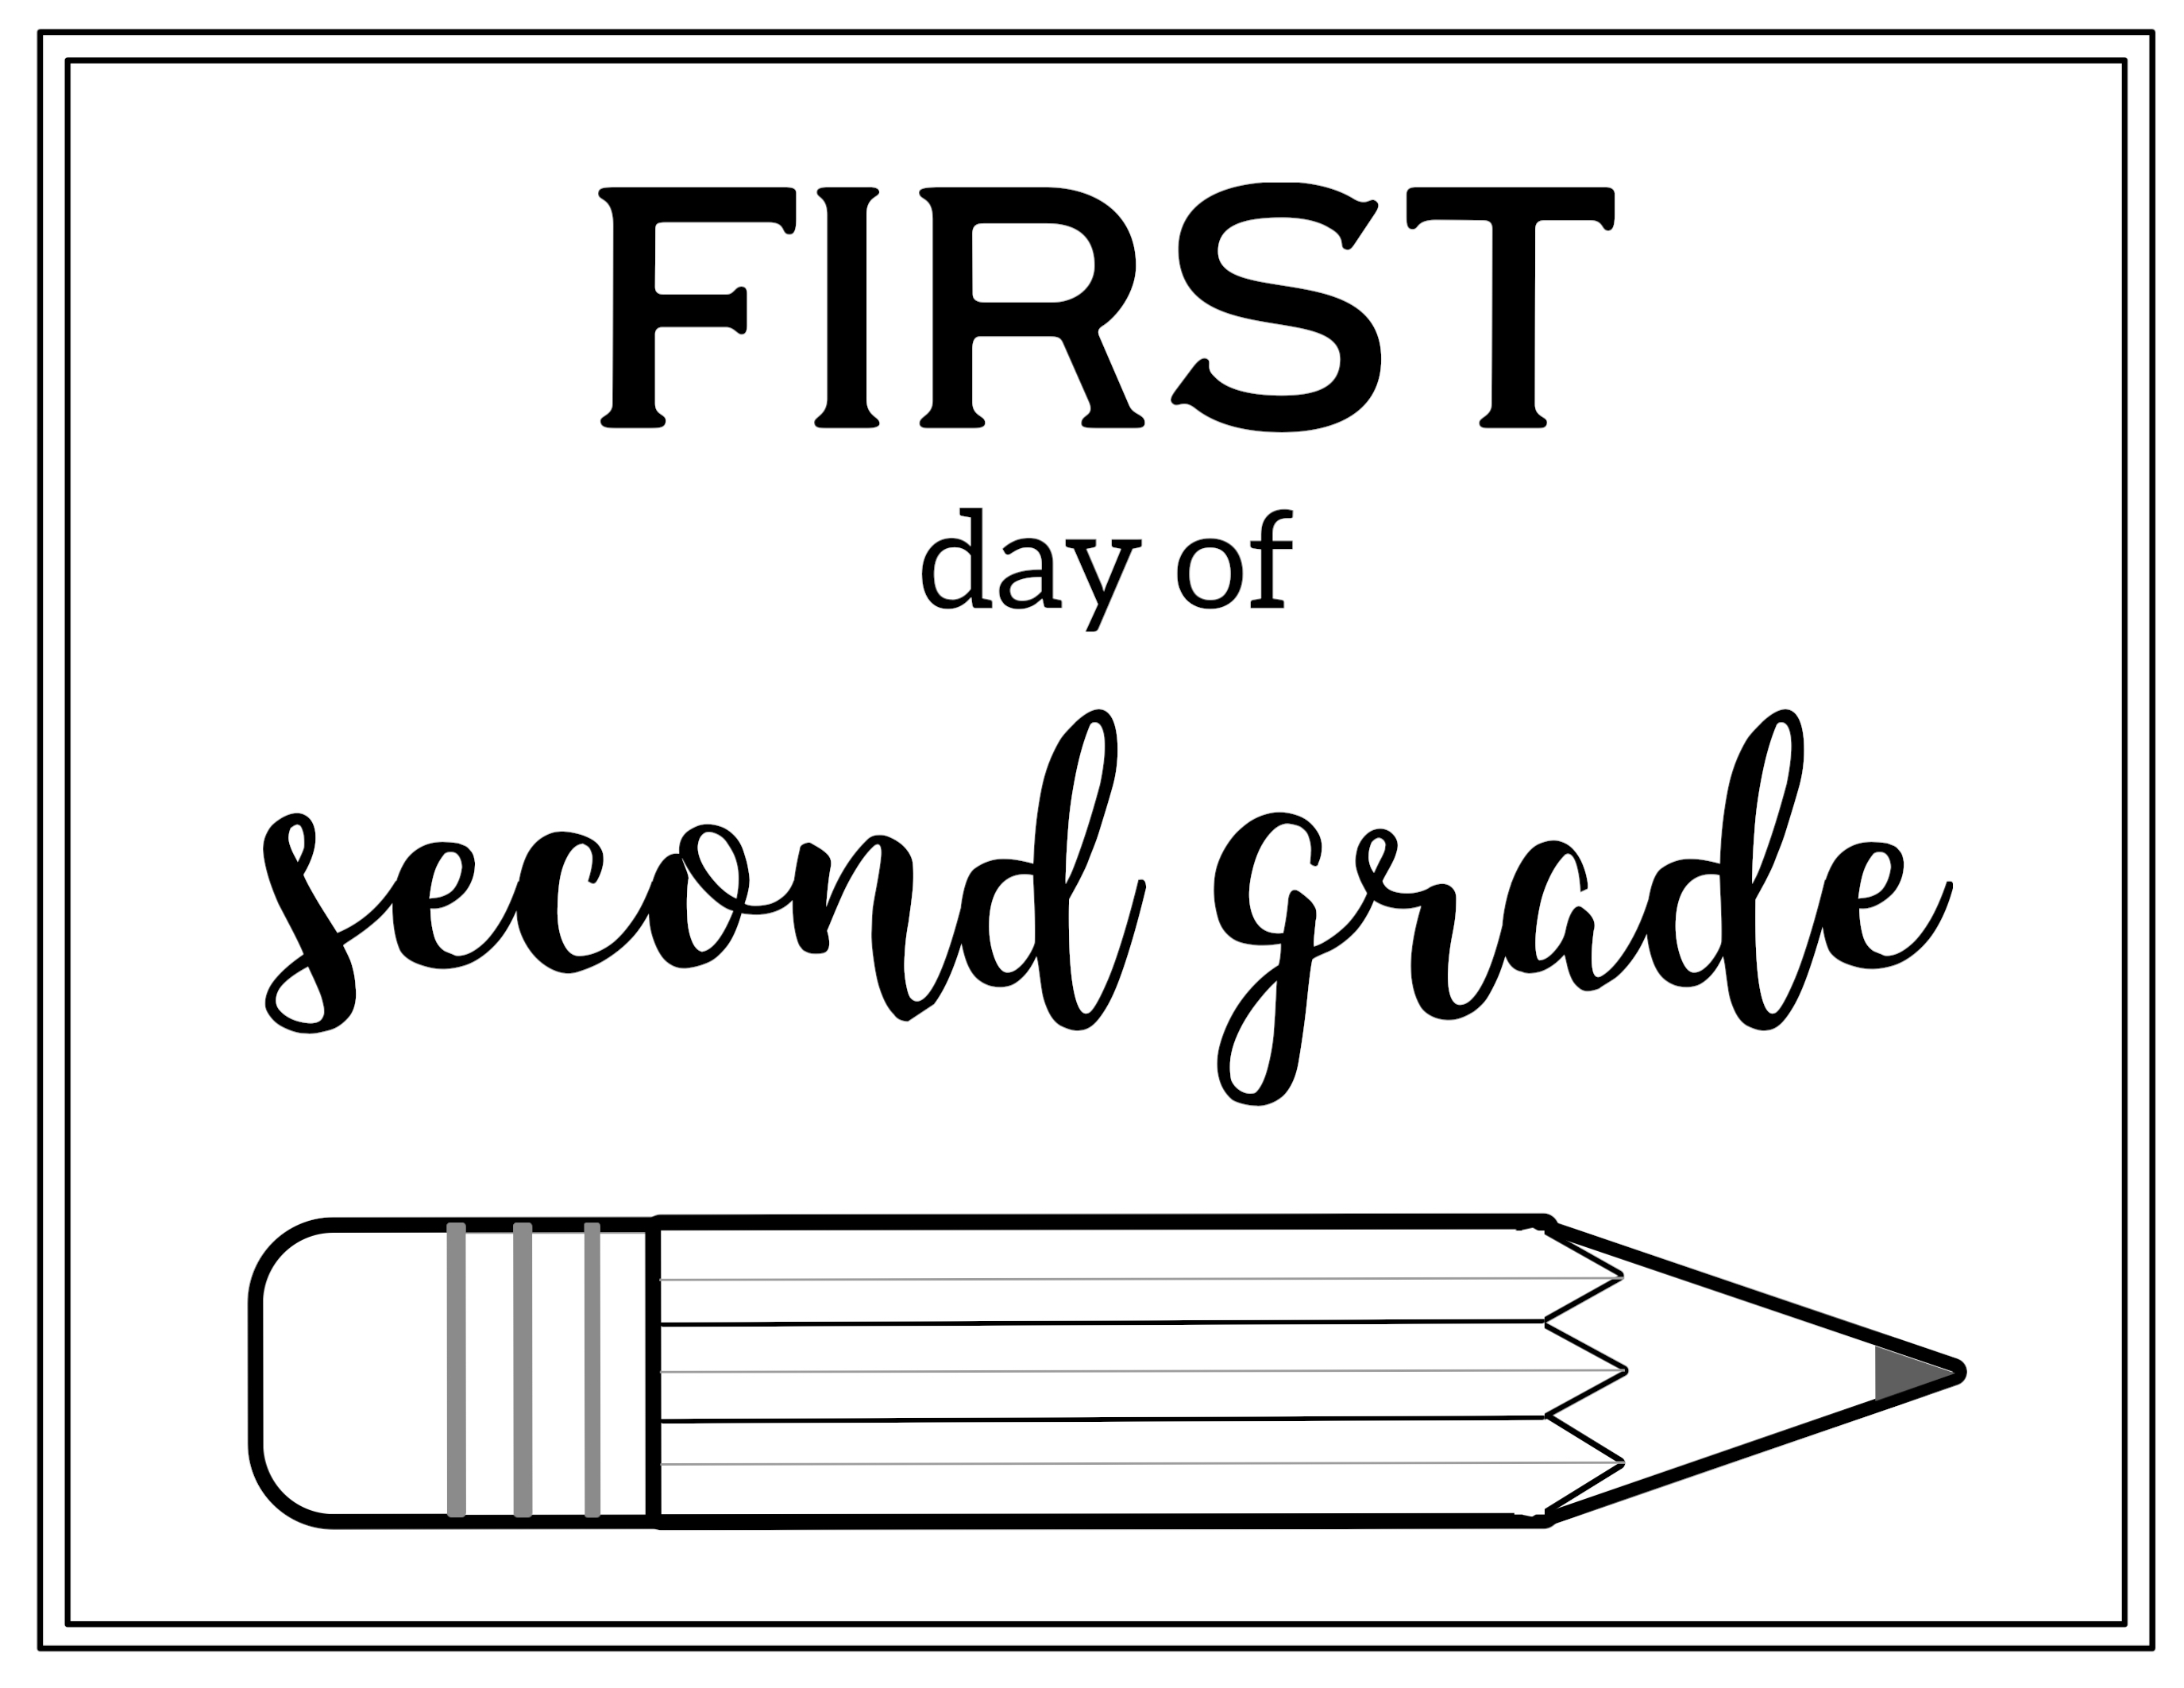 It's just a photo of Fan First Day of Second Grade Free Printable